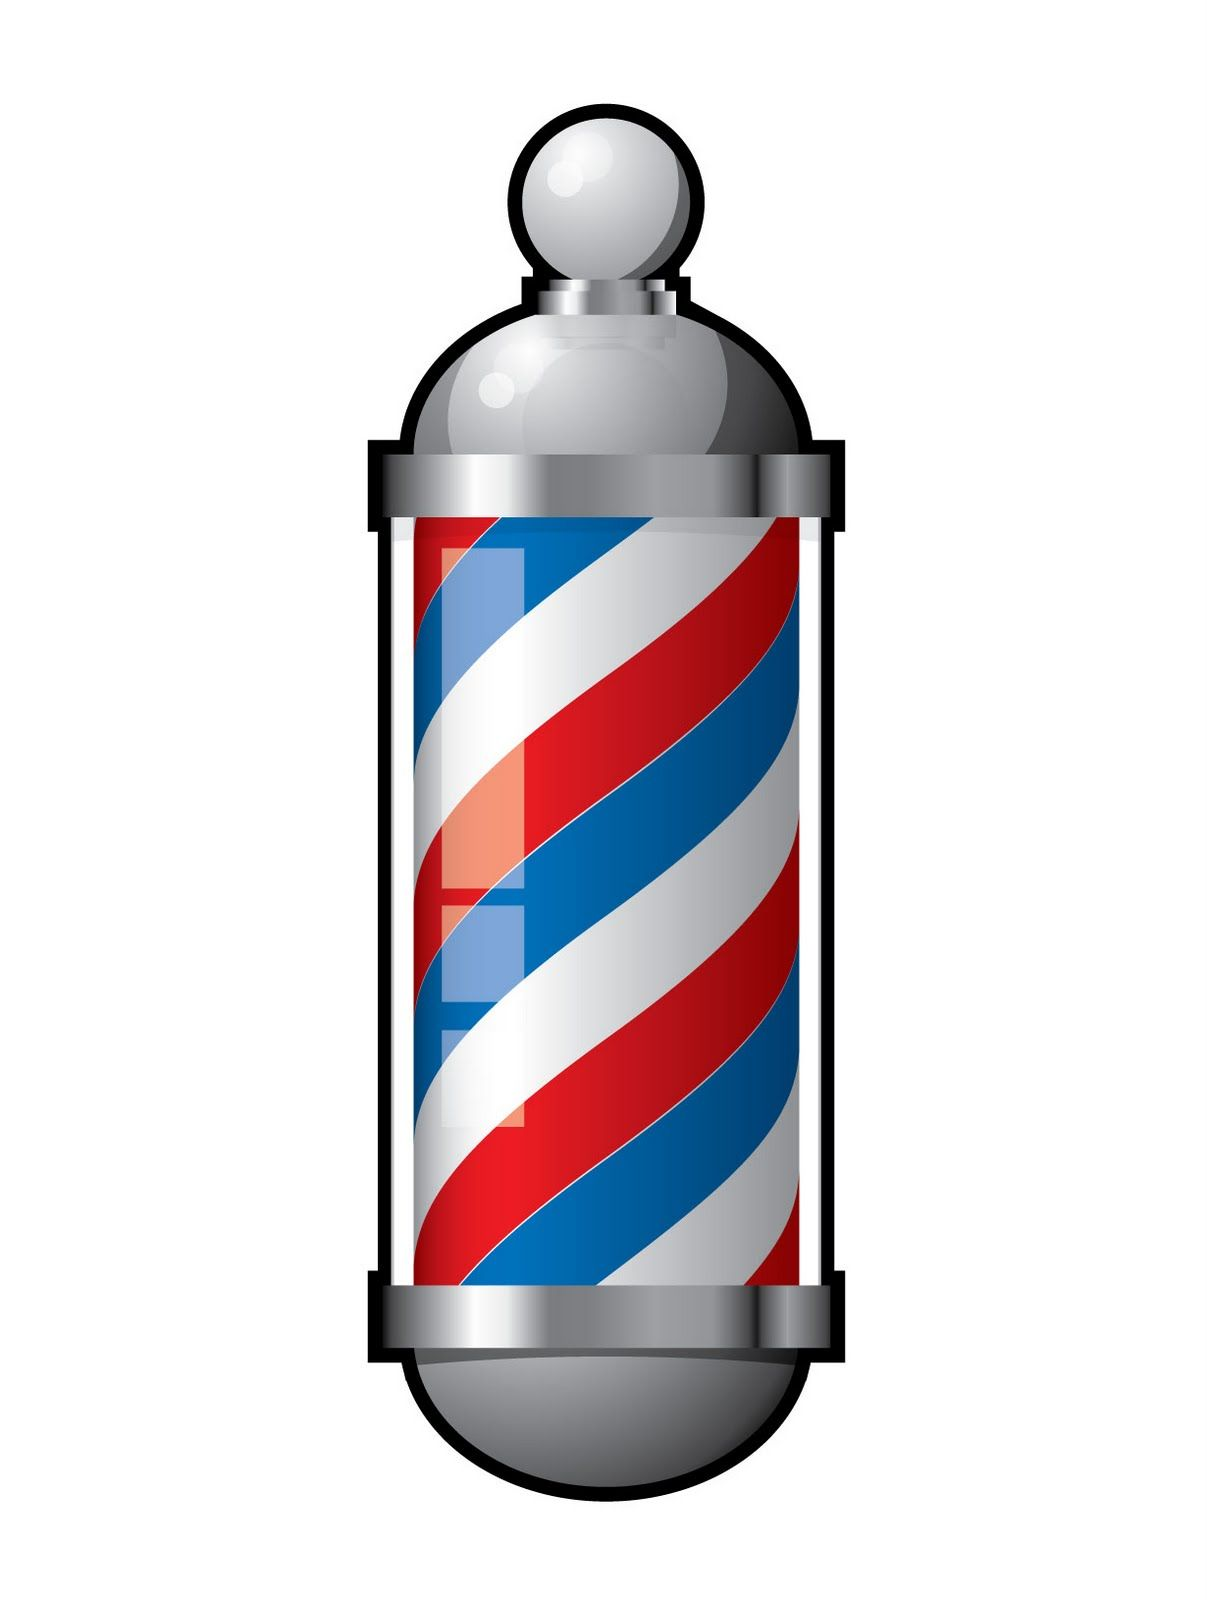 Clipart barber pole image transparent library Barber Pole Vector - ClipArt Best | Mobile office in 2019 | Barber ... image transparent library